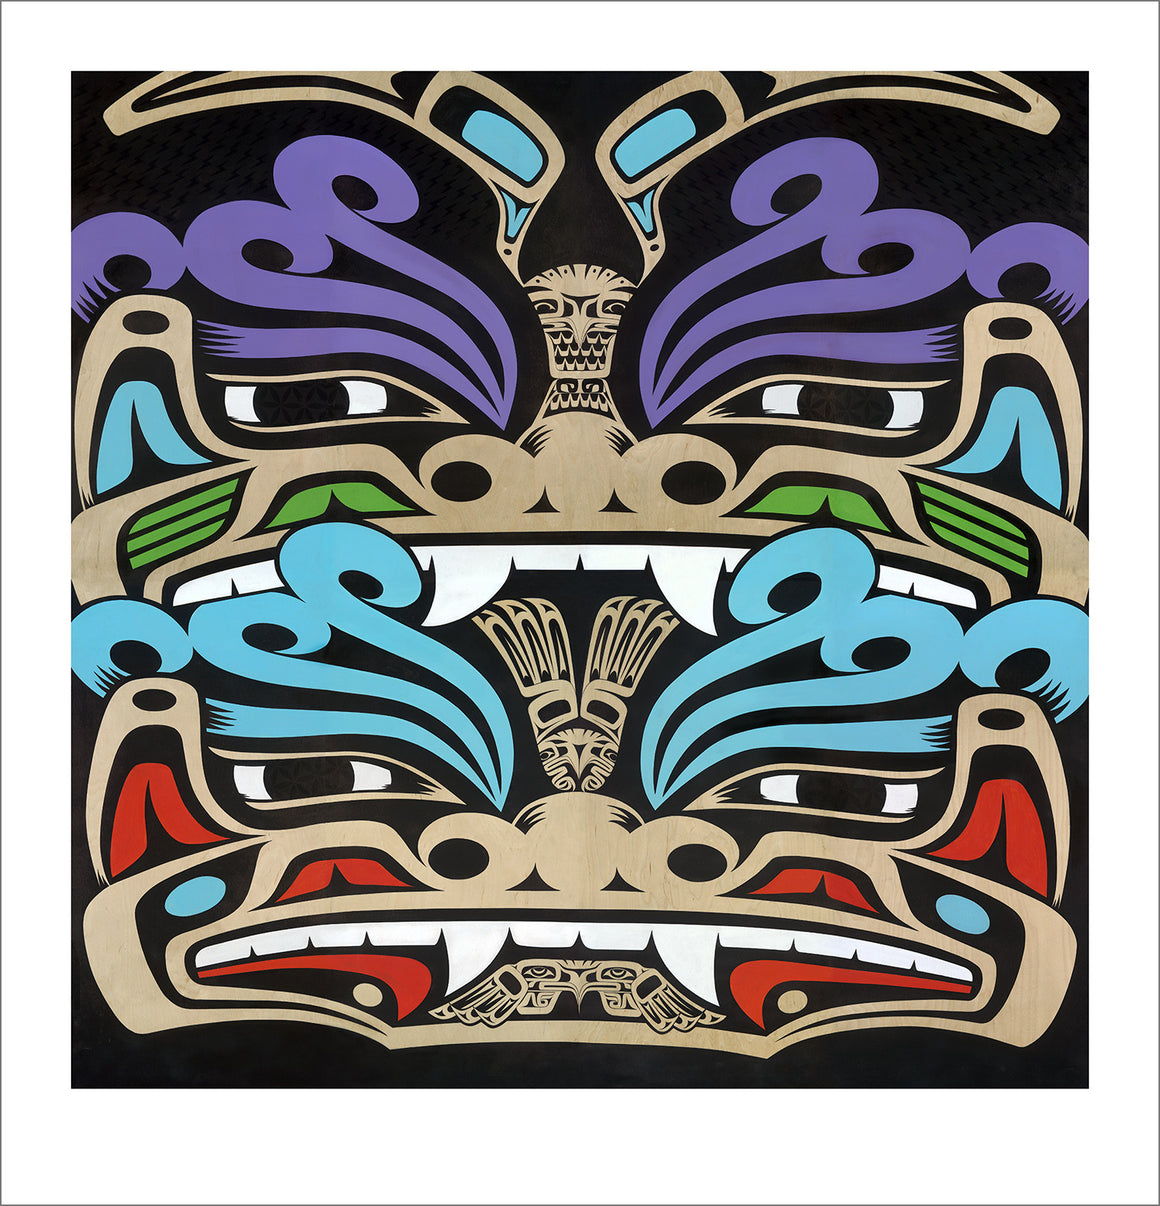 Guardians Fu Dog limited edition Giclee print by Nooksack Native artist Louie Gong